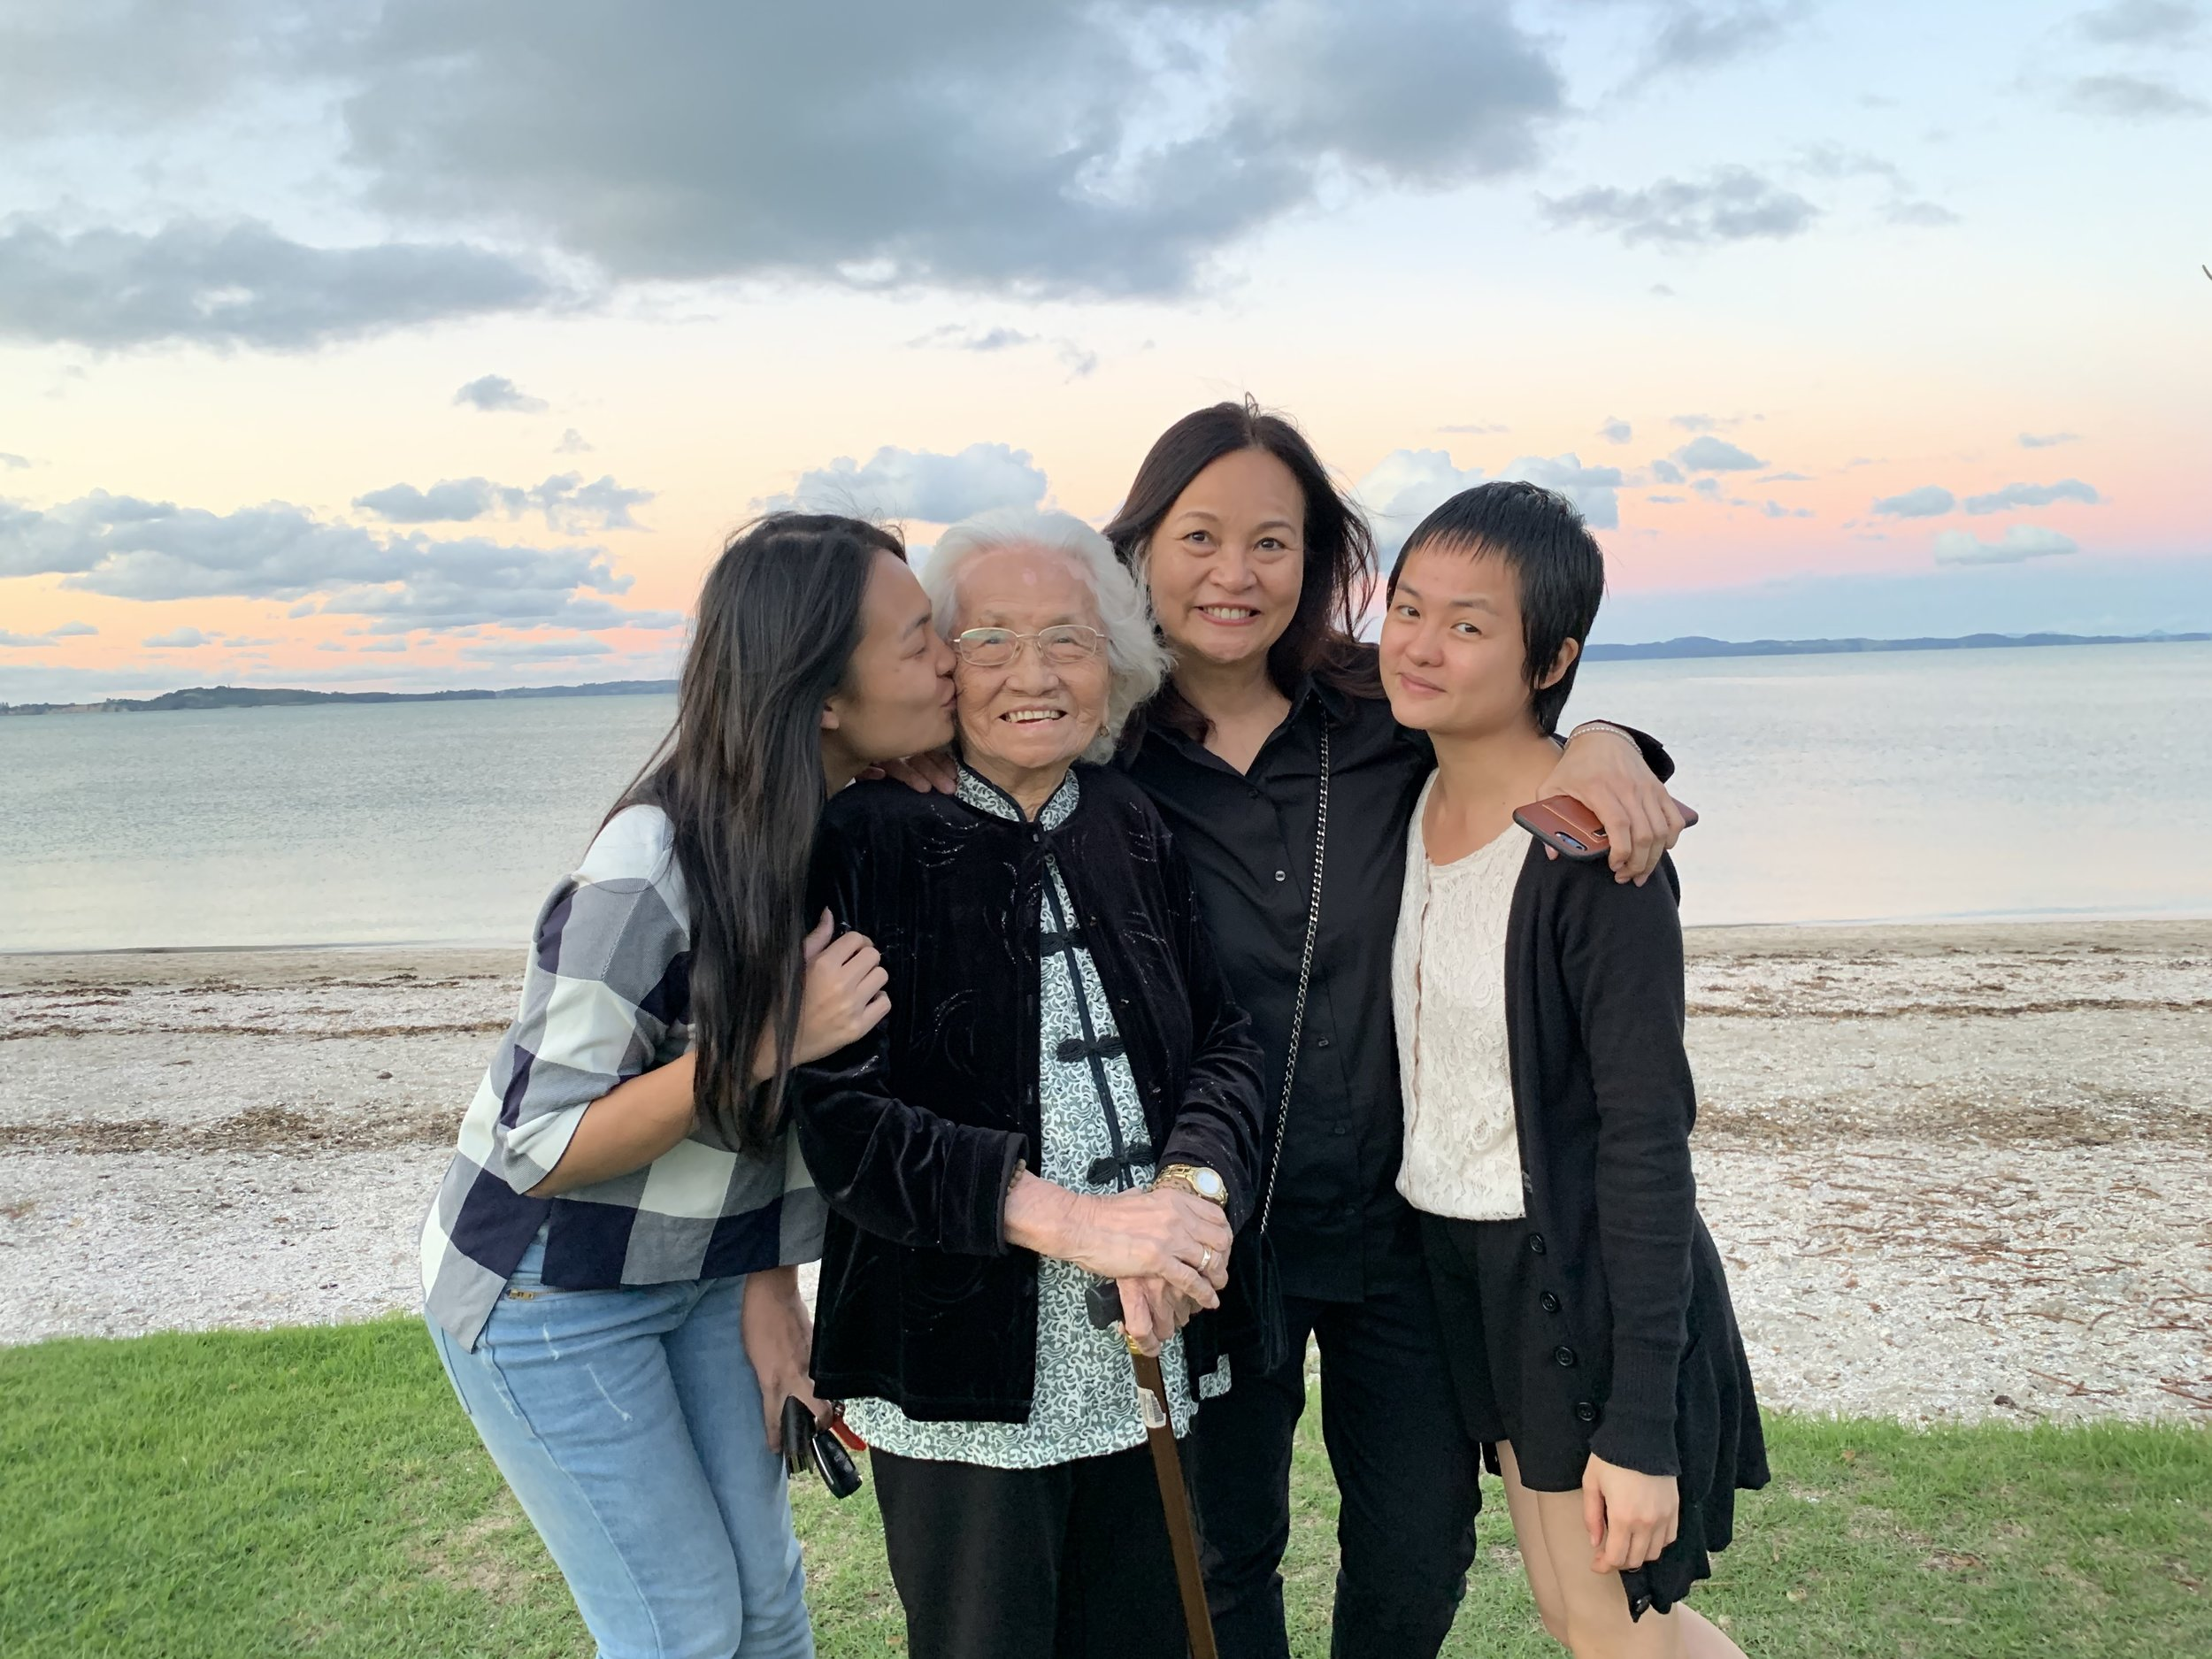 Angela Lim and her family on the beach